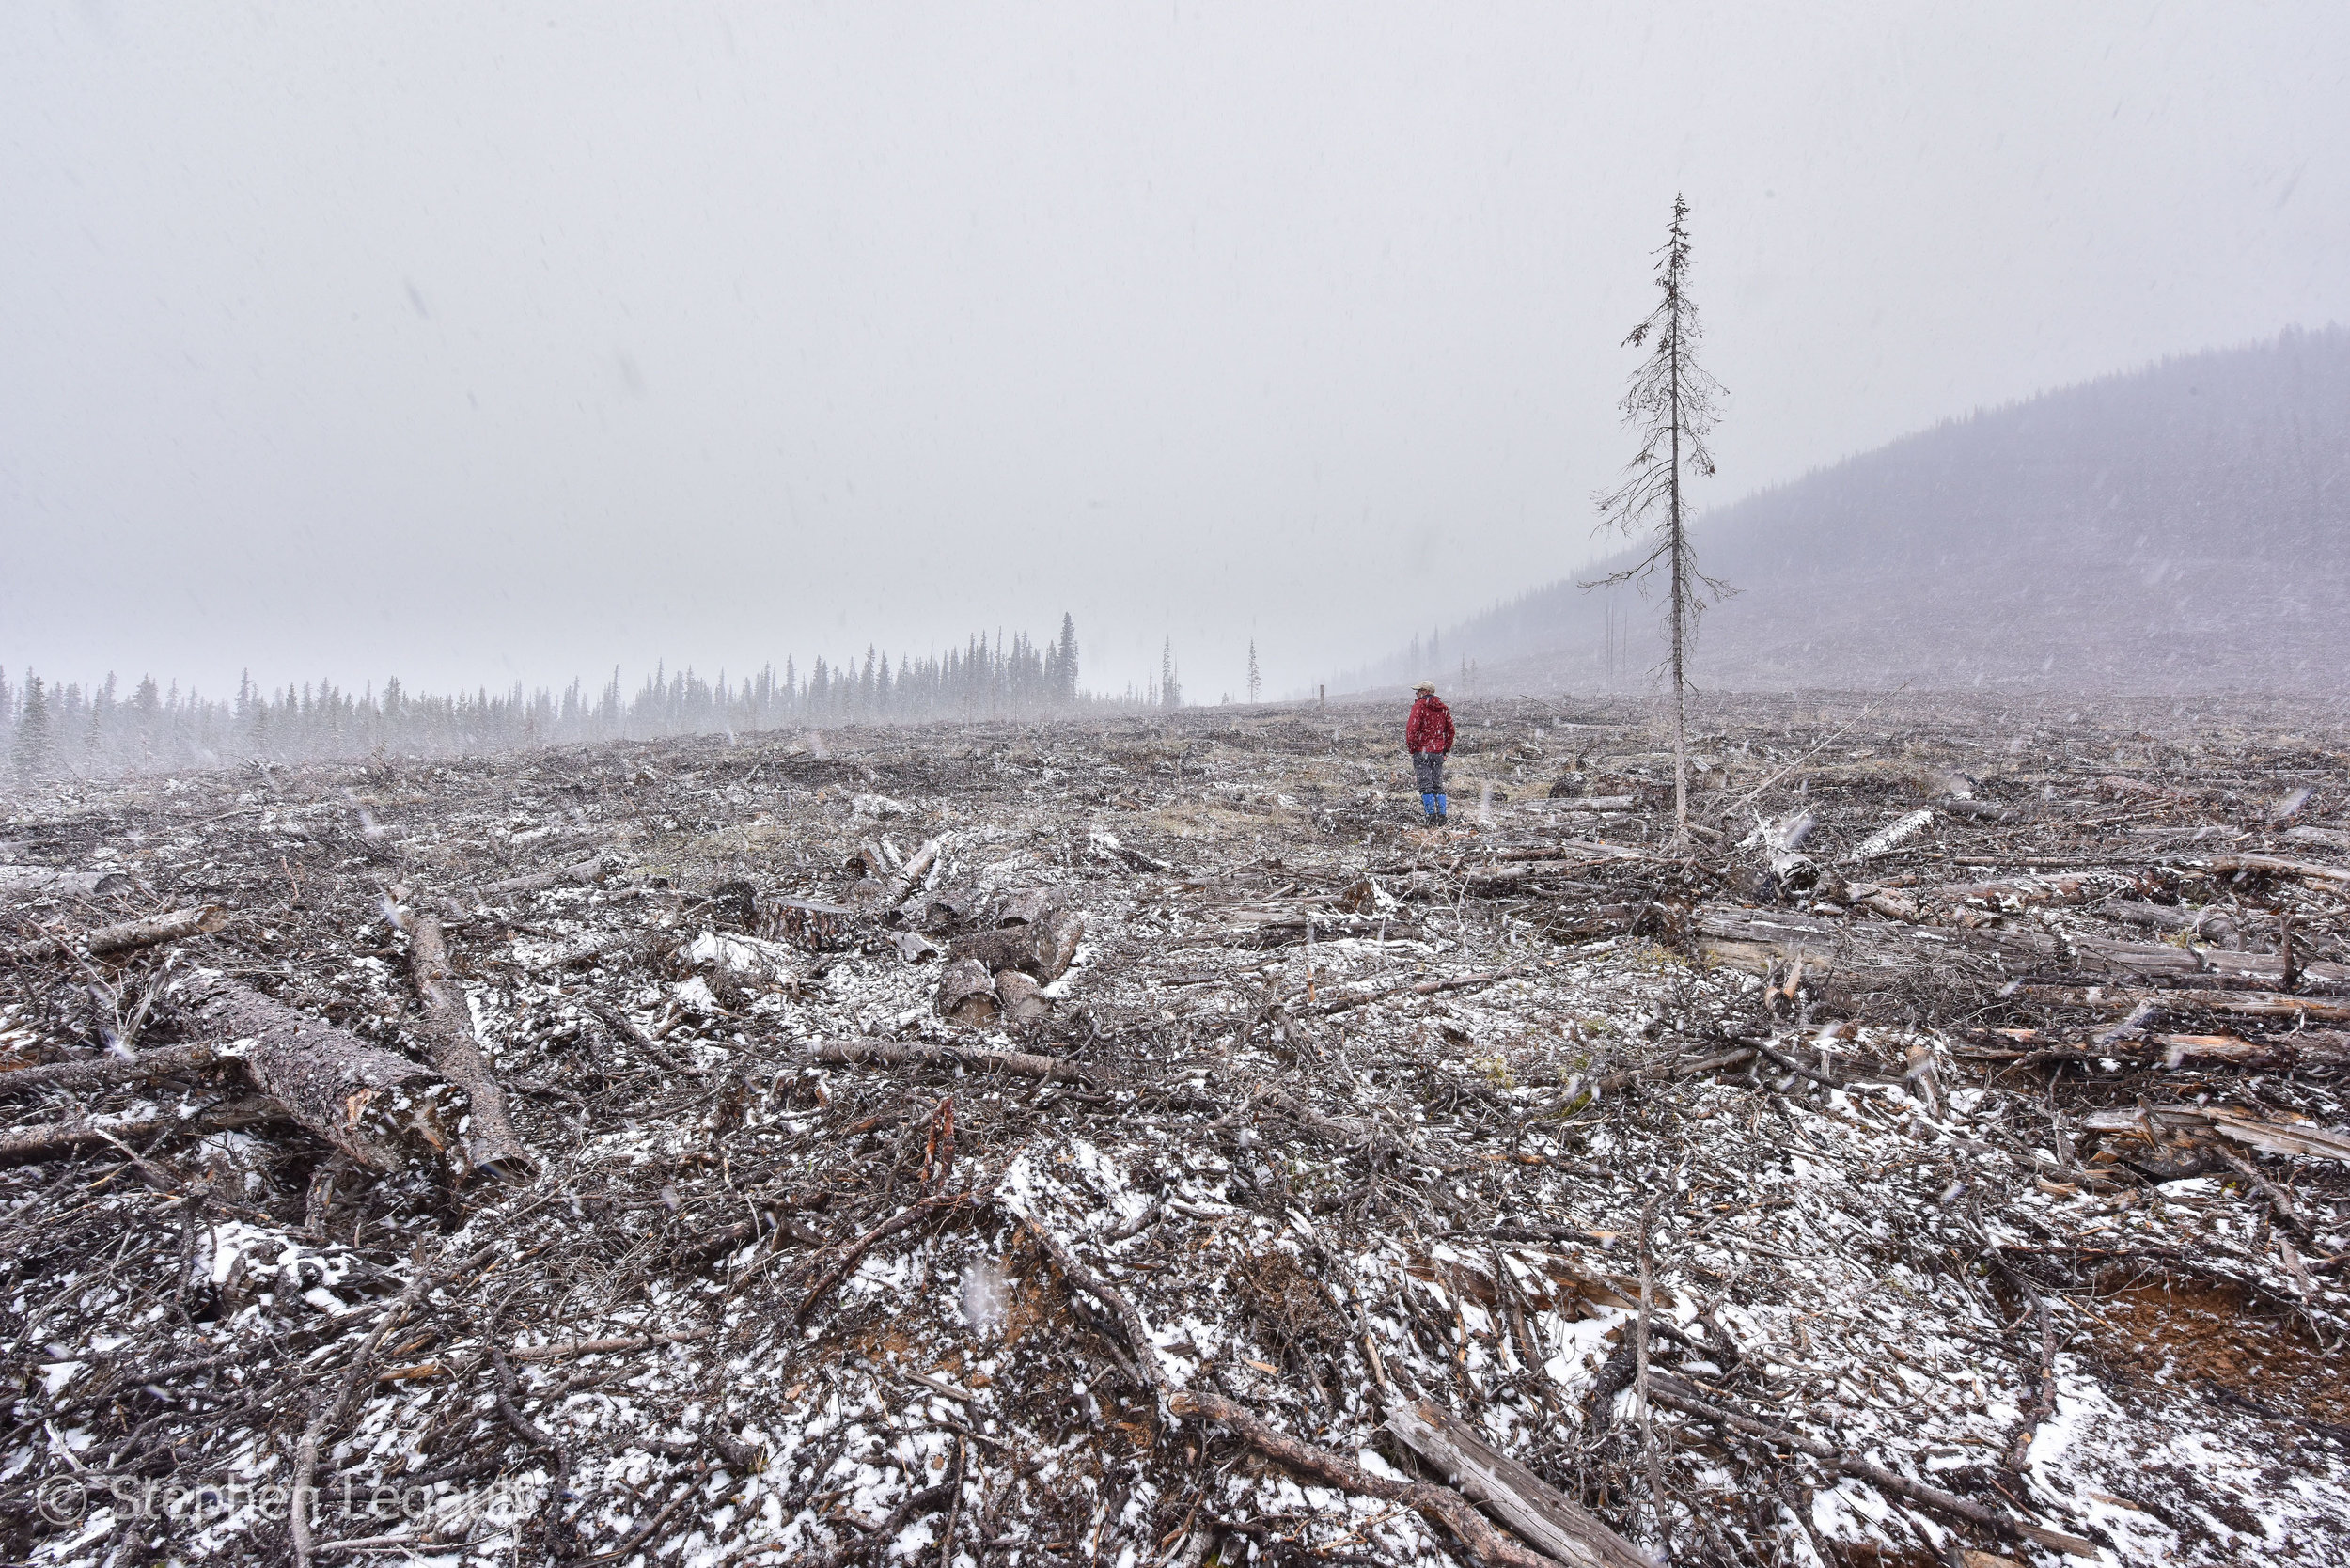 Recent logging below the Plateau Mountain Ecological Reserve in the Cataract Creek area of the Highwood River drainage.